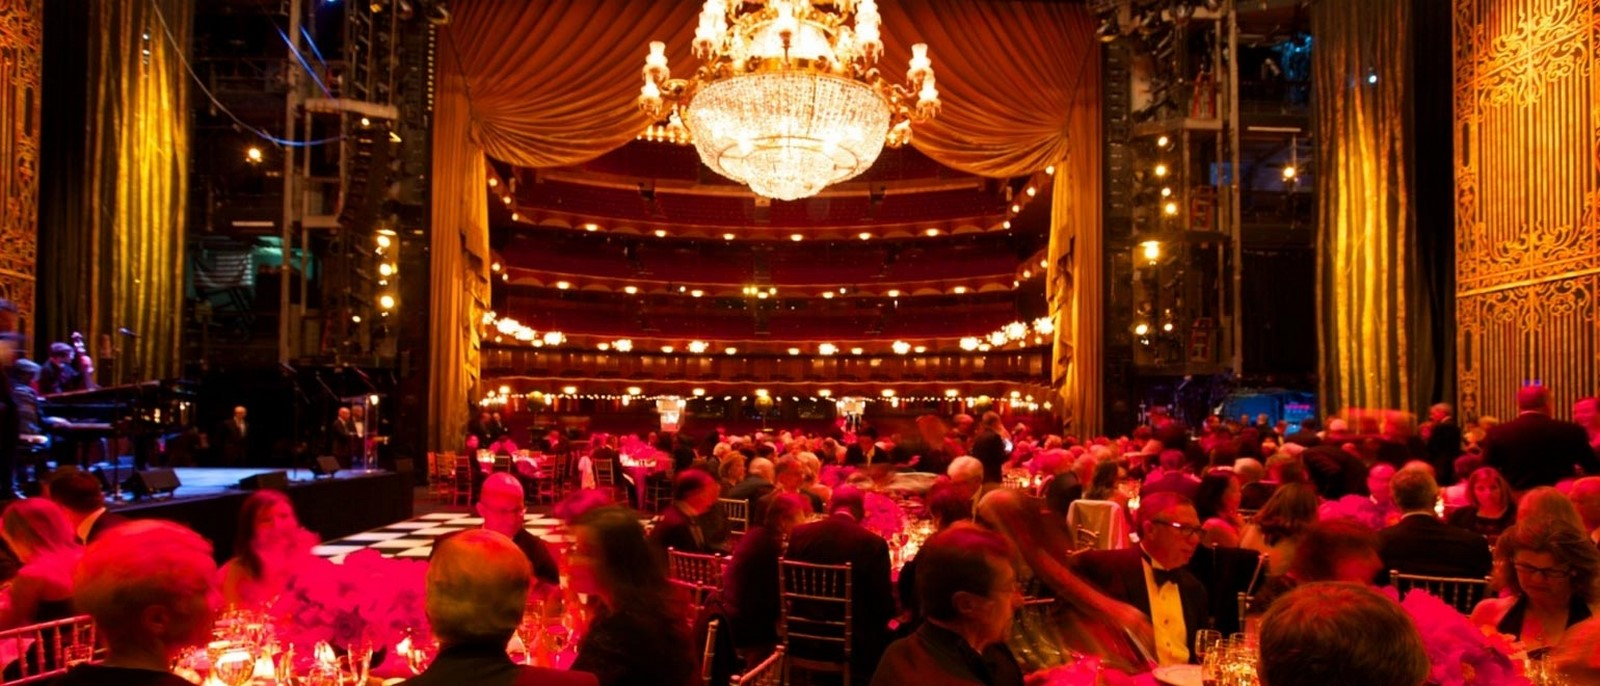 10 Things you did not know about Lincoln Center, New York City - Sheet14